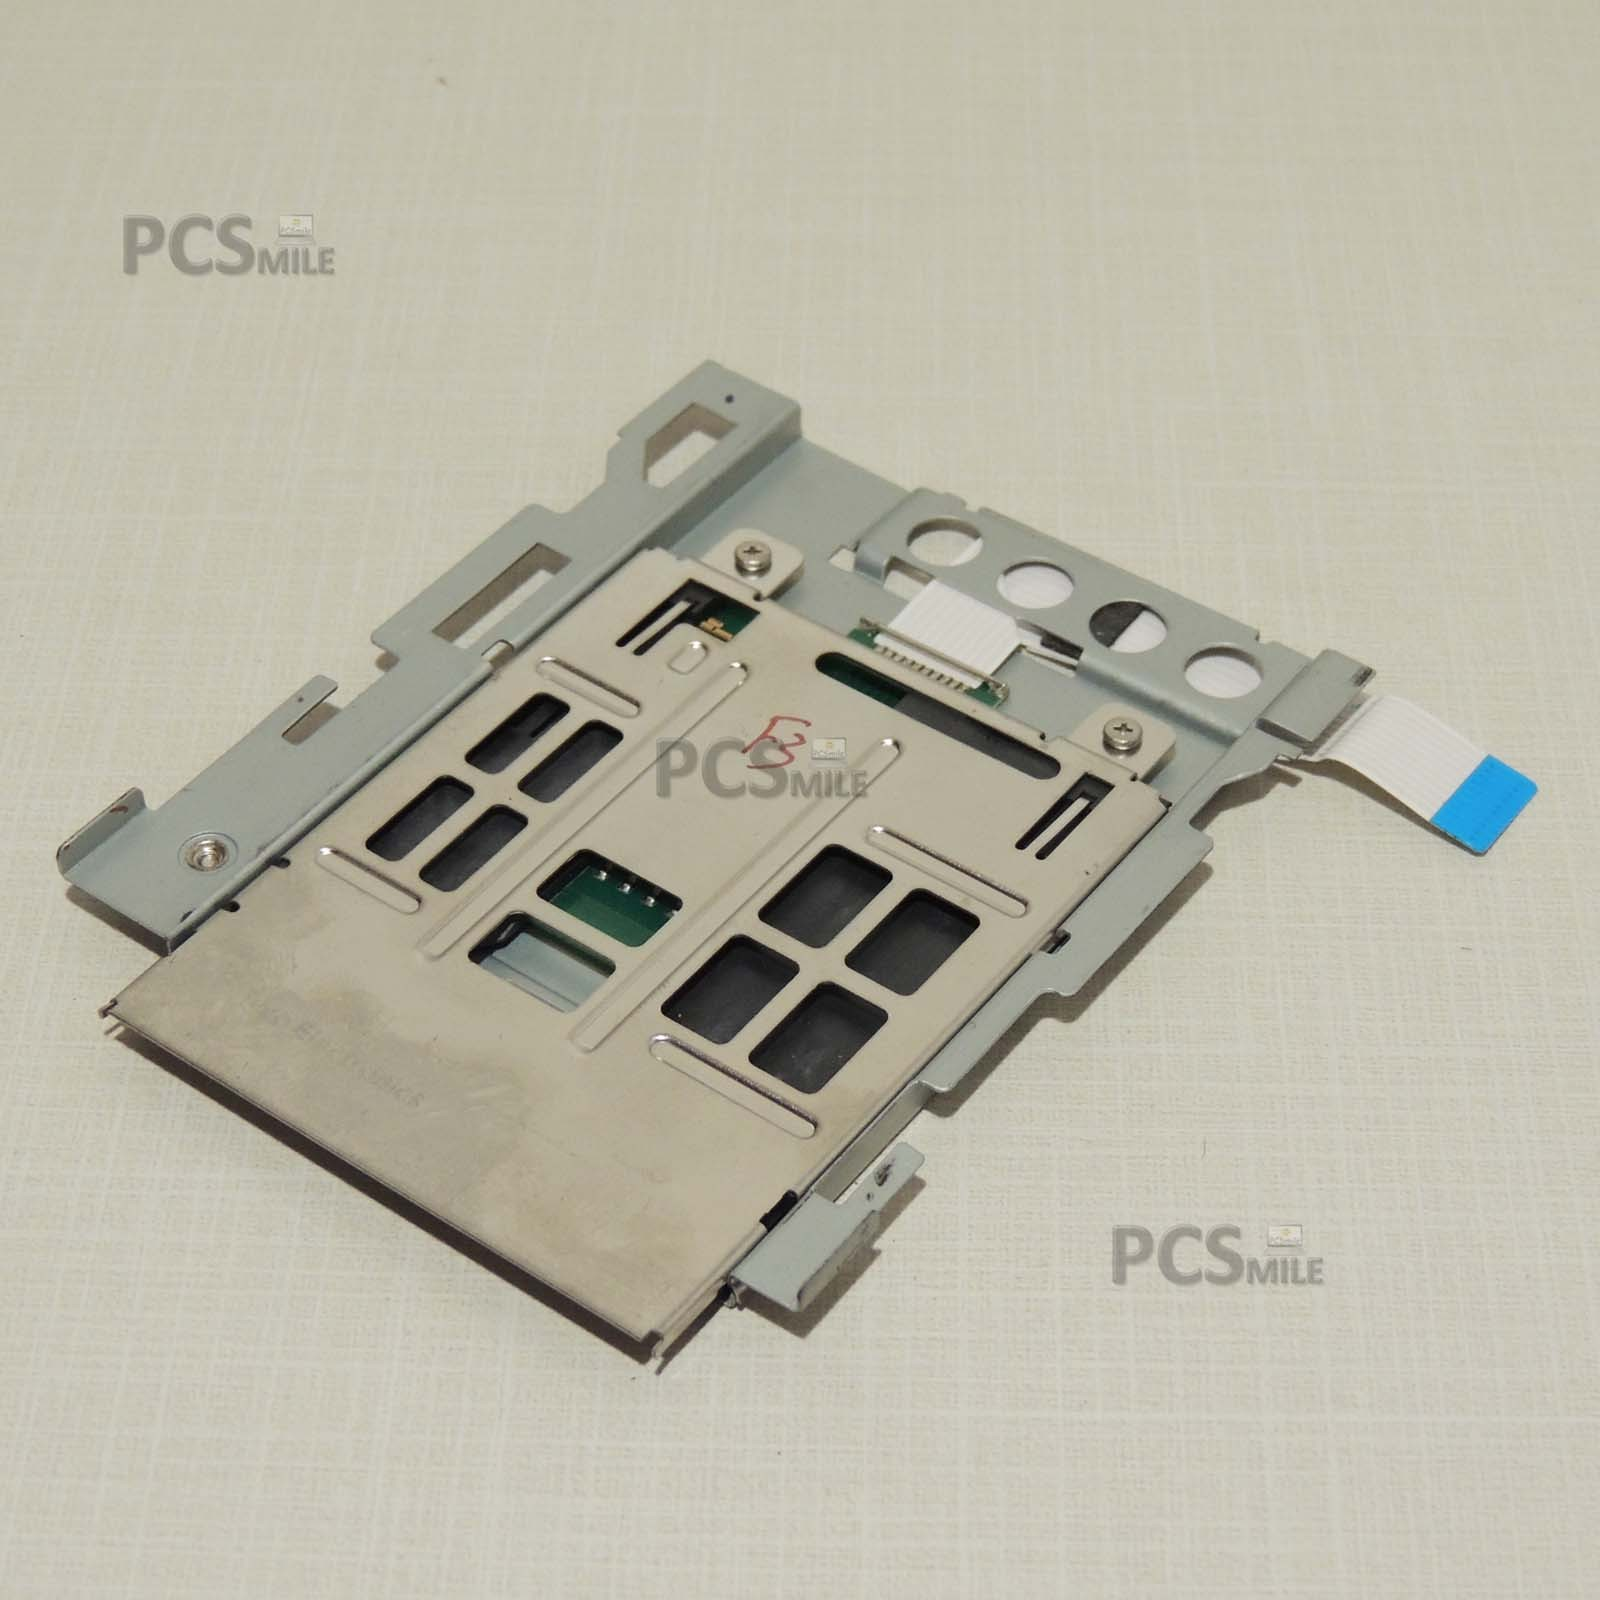 Dell Latitude E6400 PP27L lETTORE DI SMART CARD Tyco Electronics